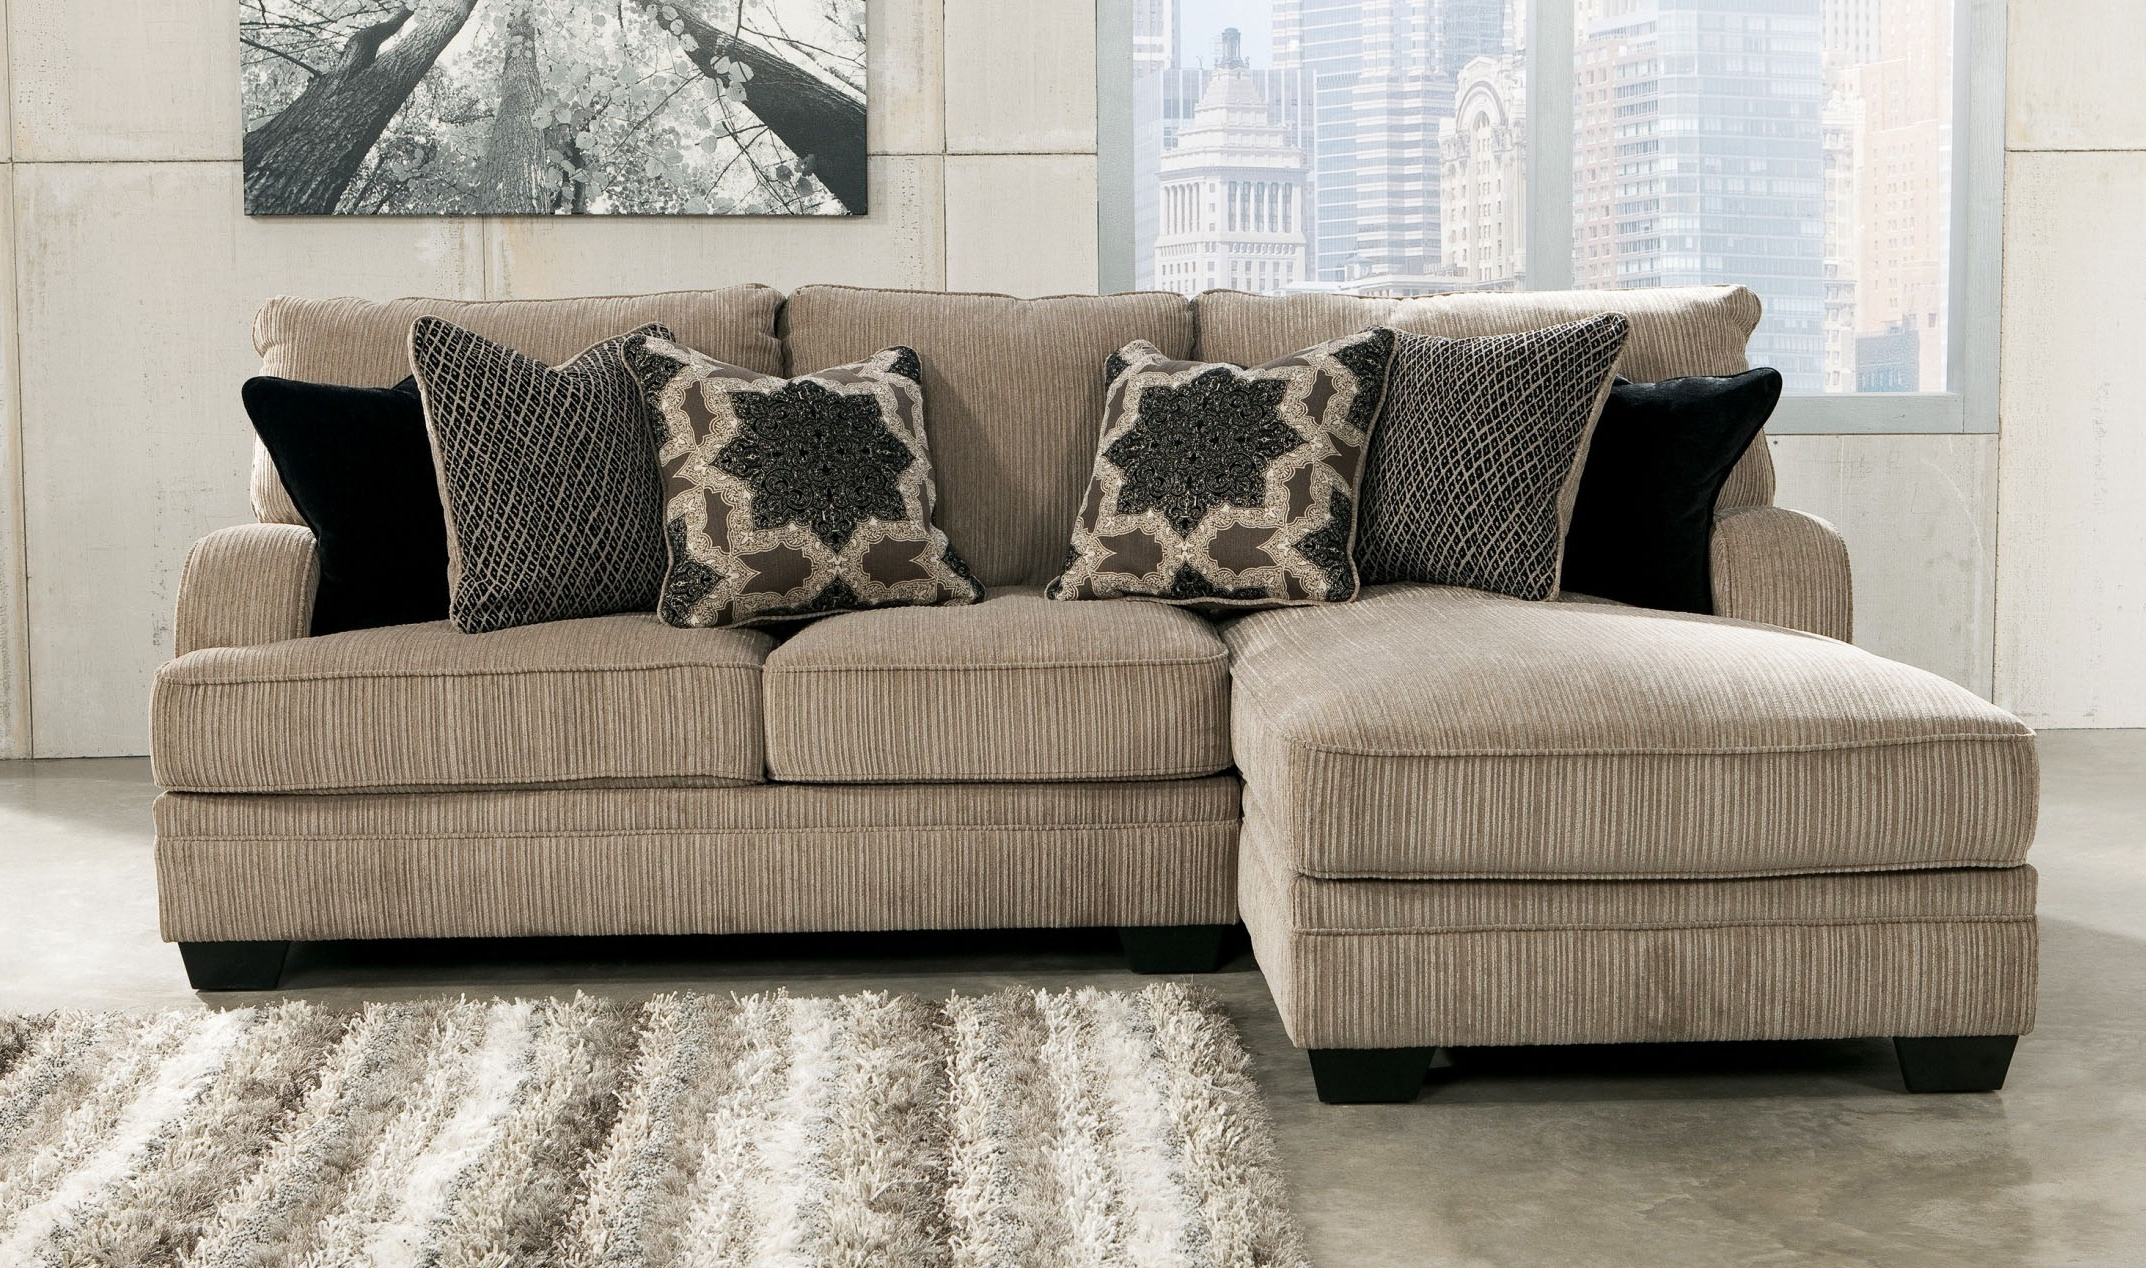 Most Current Sectional Sofas For Small Spaces Intended For Ethan Mordden Modern Sofa Set Designs For Living Room Charcoal (View 8 of 20)